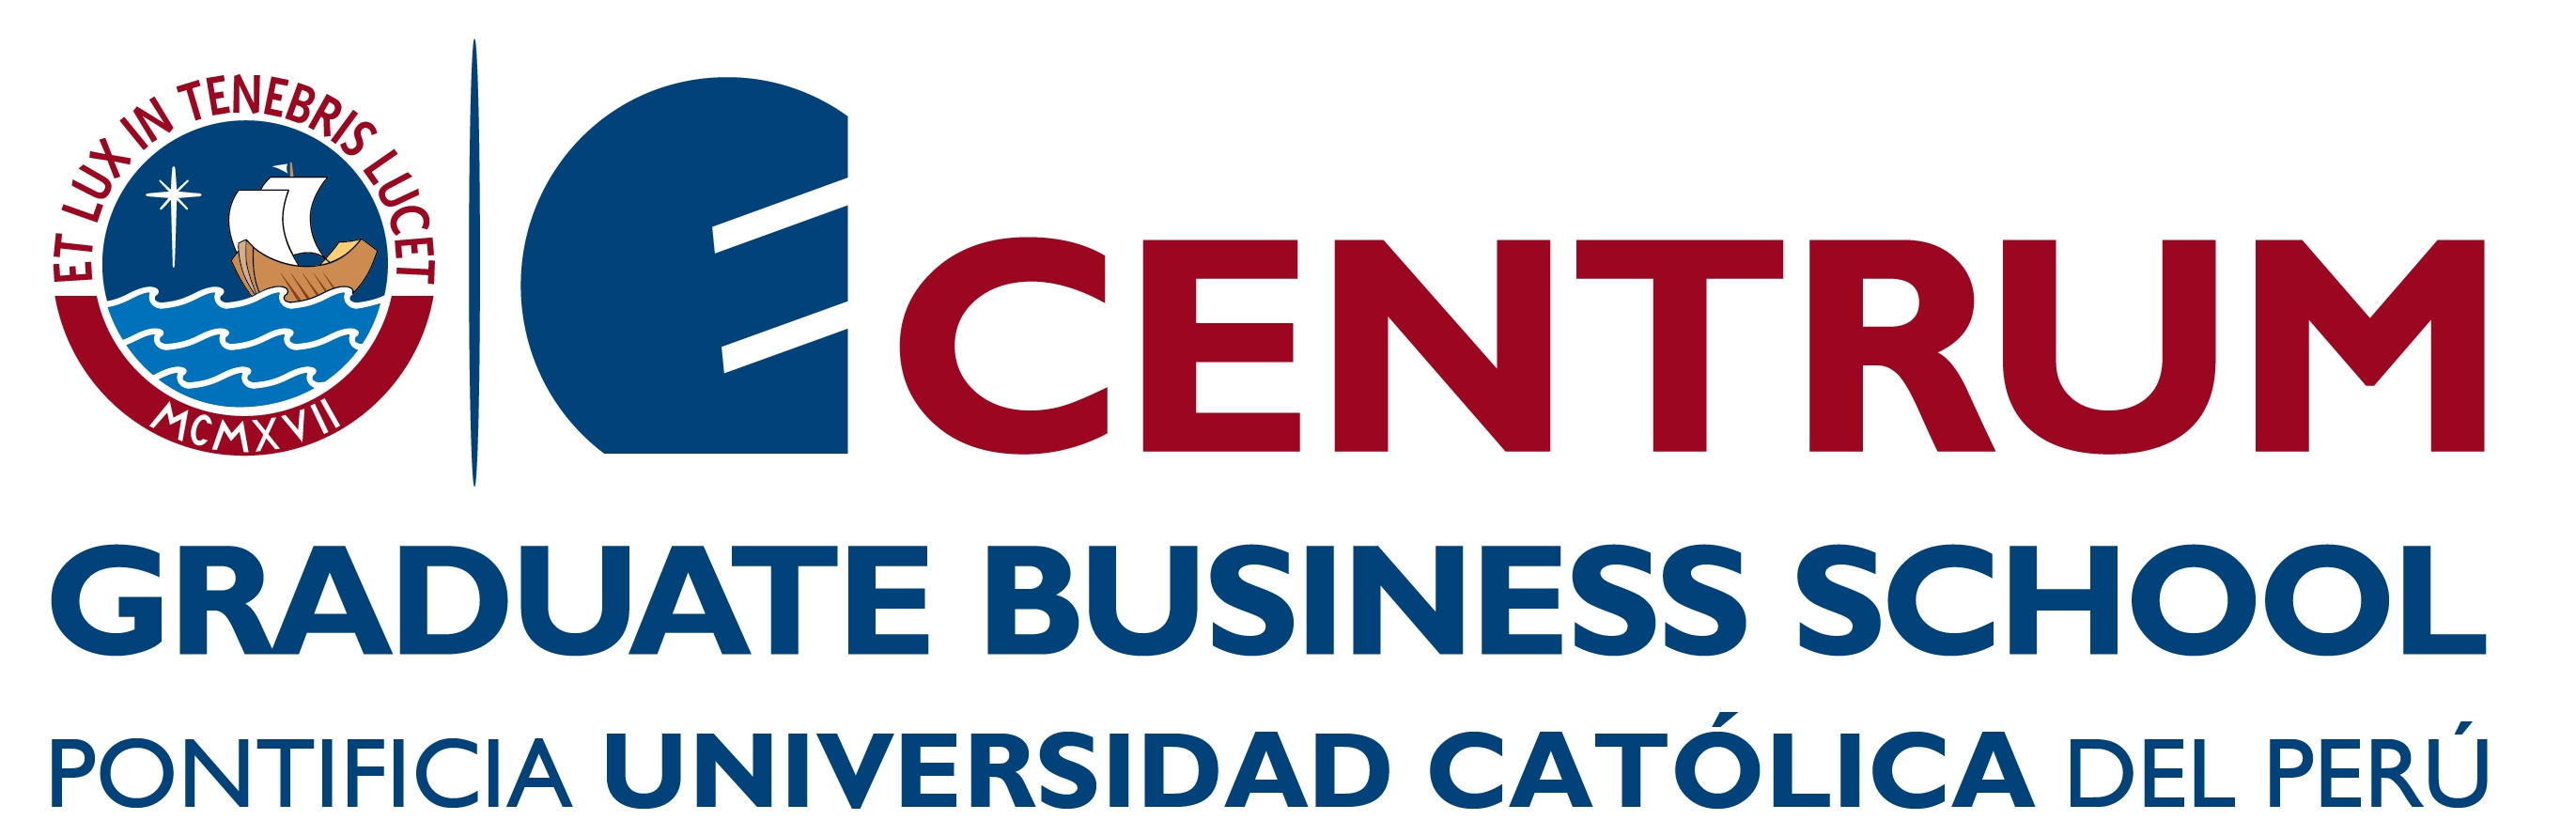 Logo CENTRUM Graduate Business School – Pontificia Universidad Catolica del Peru